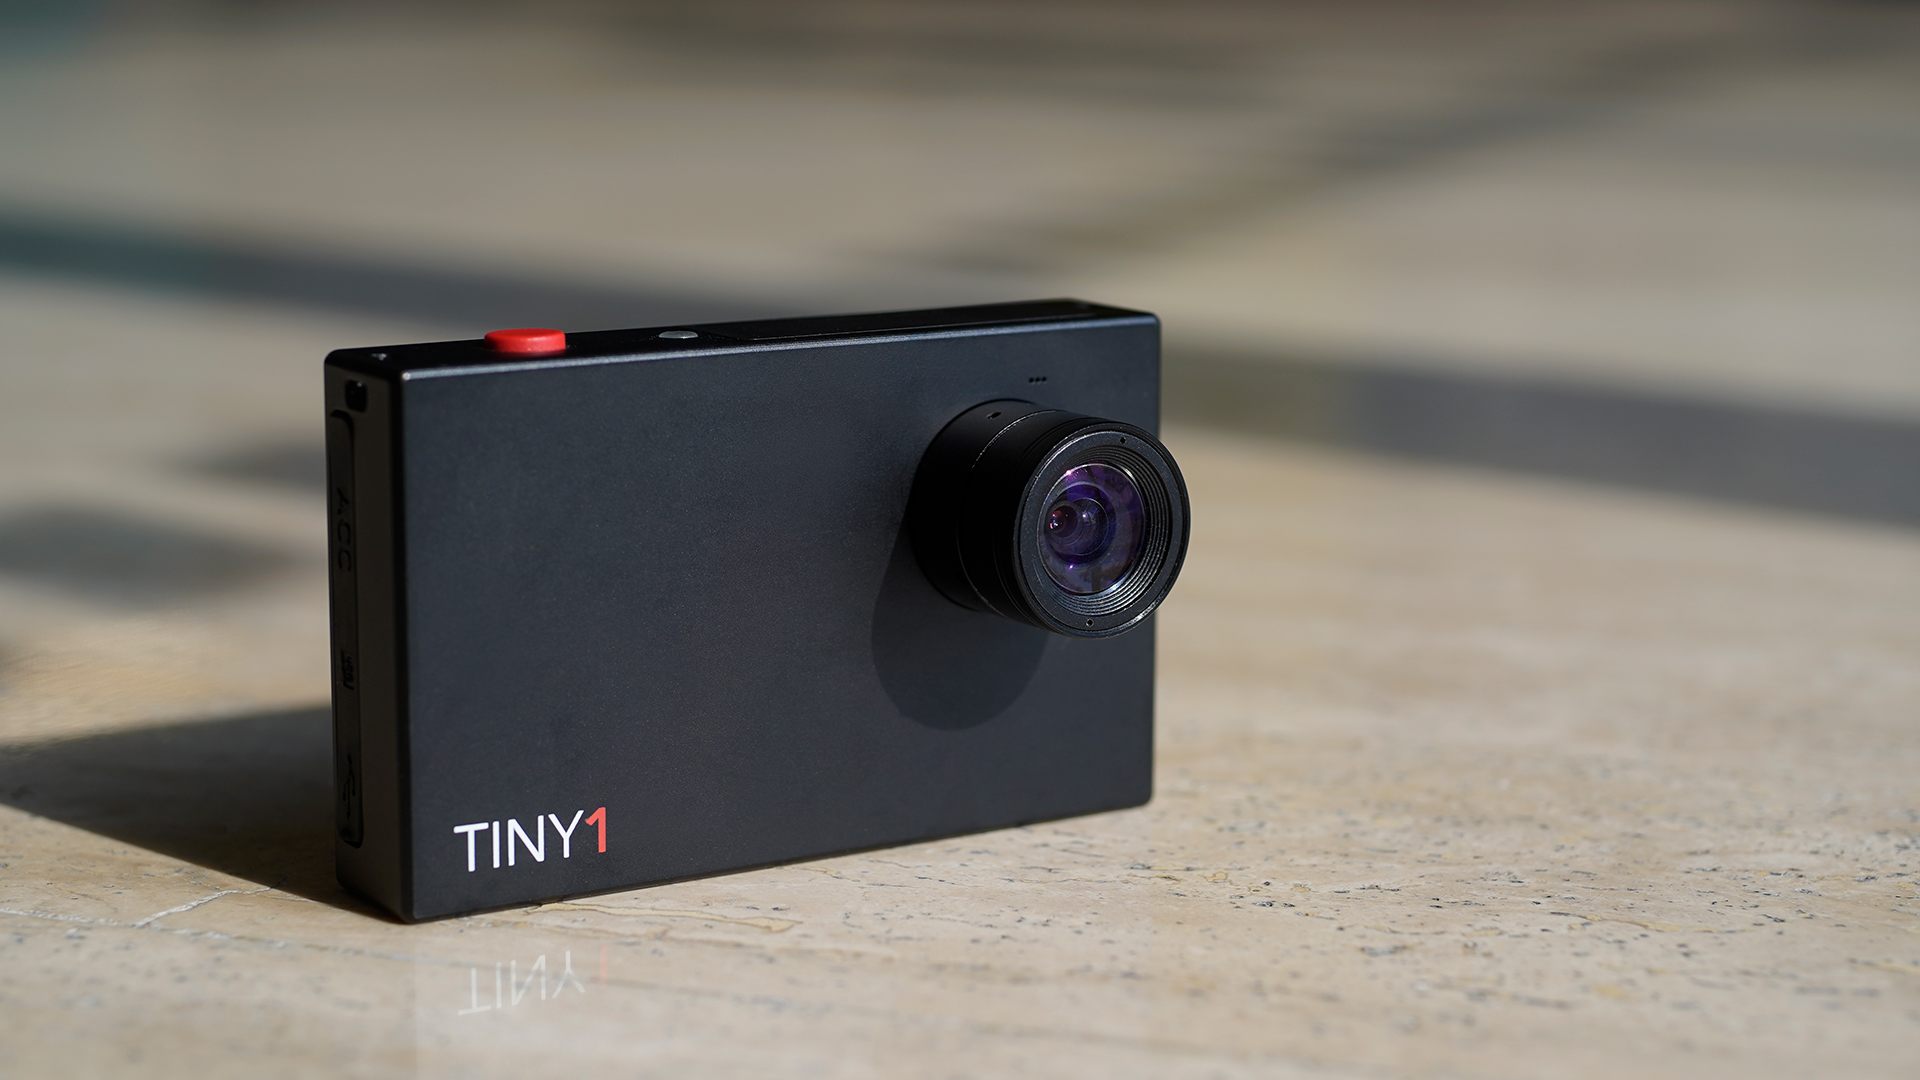 TINY1 - The world's smallest astronomy camera2016